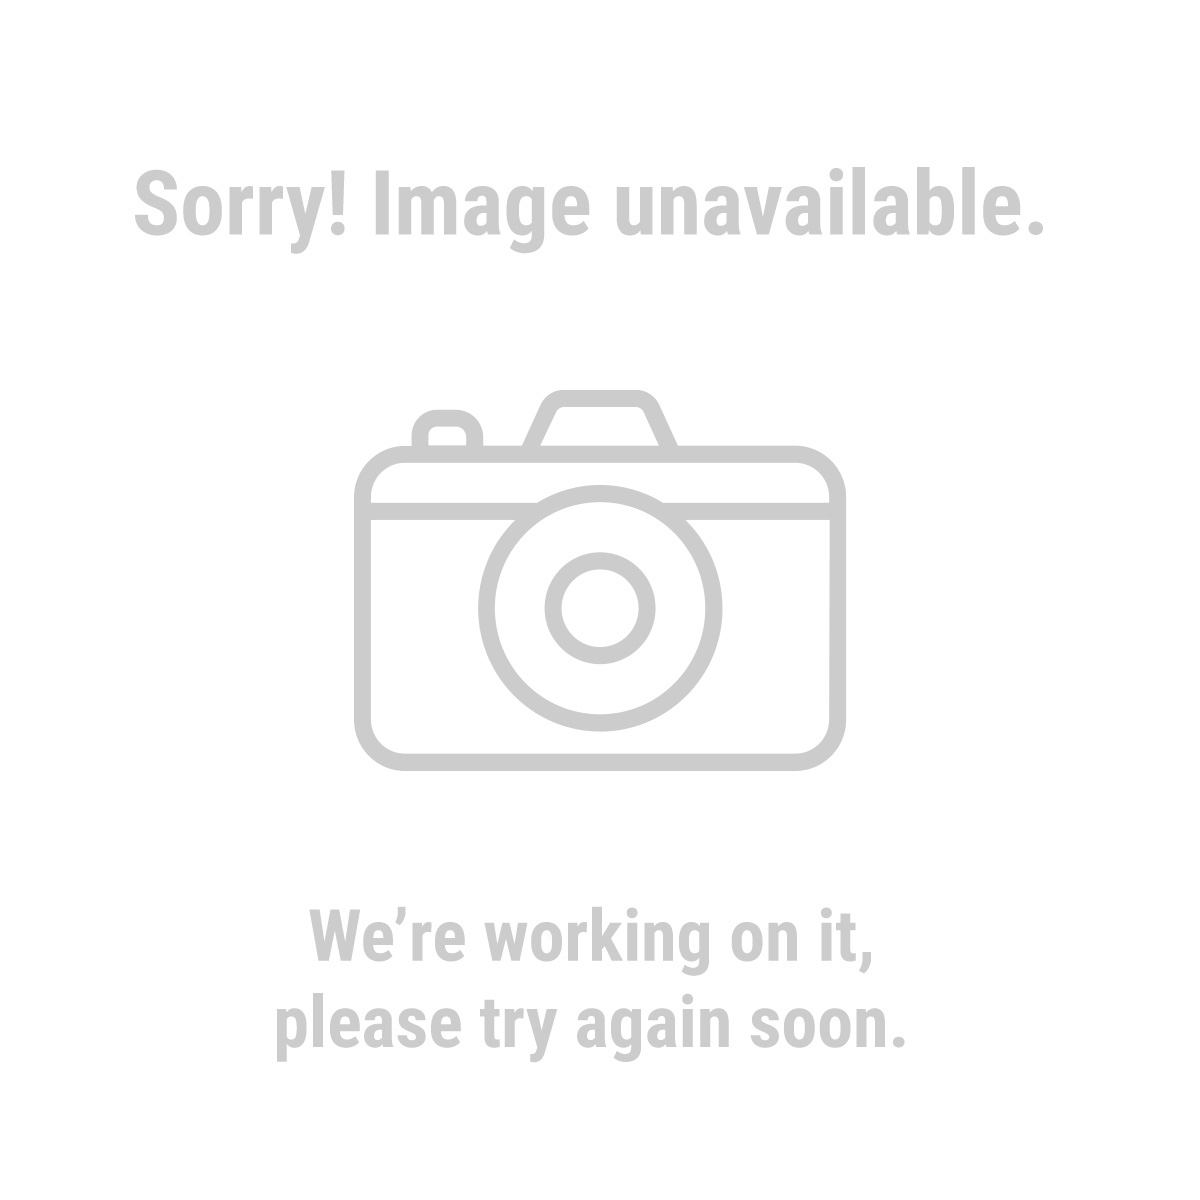 440 Lbs. Electric Hoist with Remote Control Harbor Freight Pittsburgh Electric Hoist Wiring Diagram on harbor freight hoist repair, harbor freight hoist motor, harbor freight hoist system,